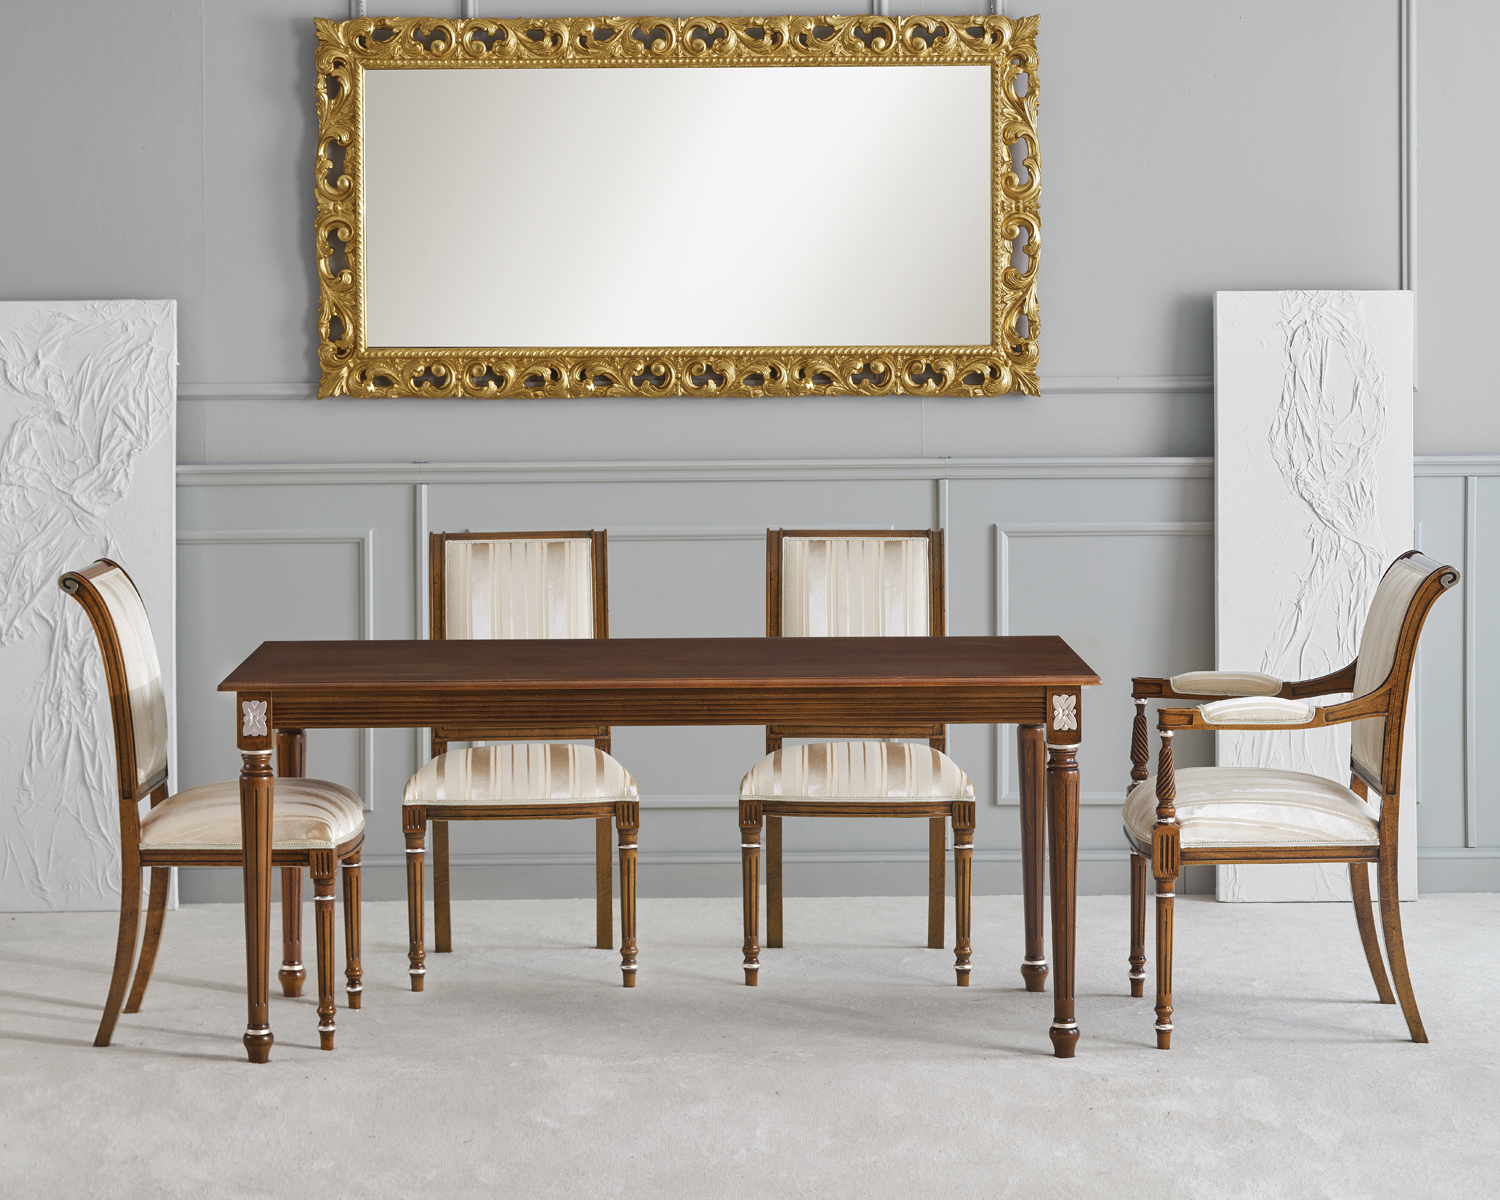 Dining-table-set-India